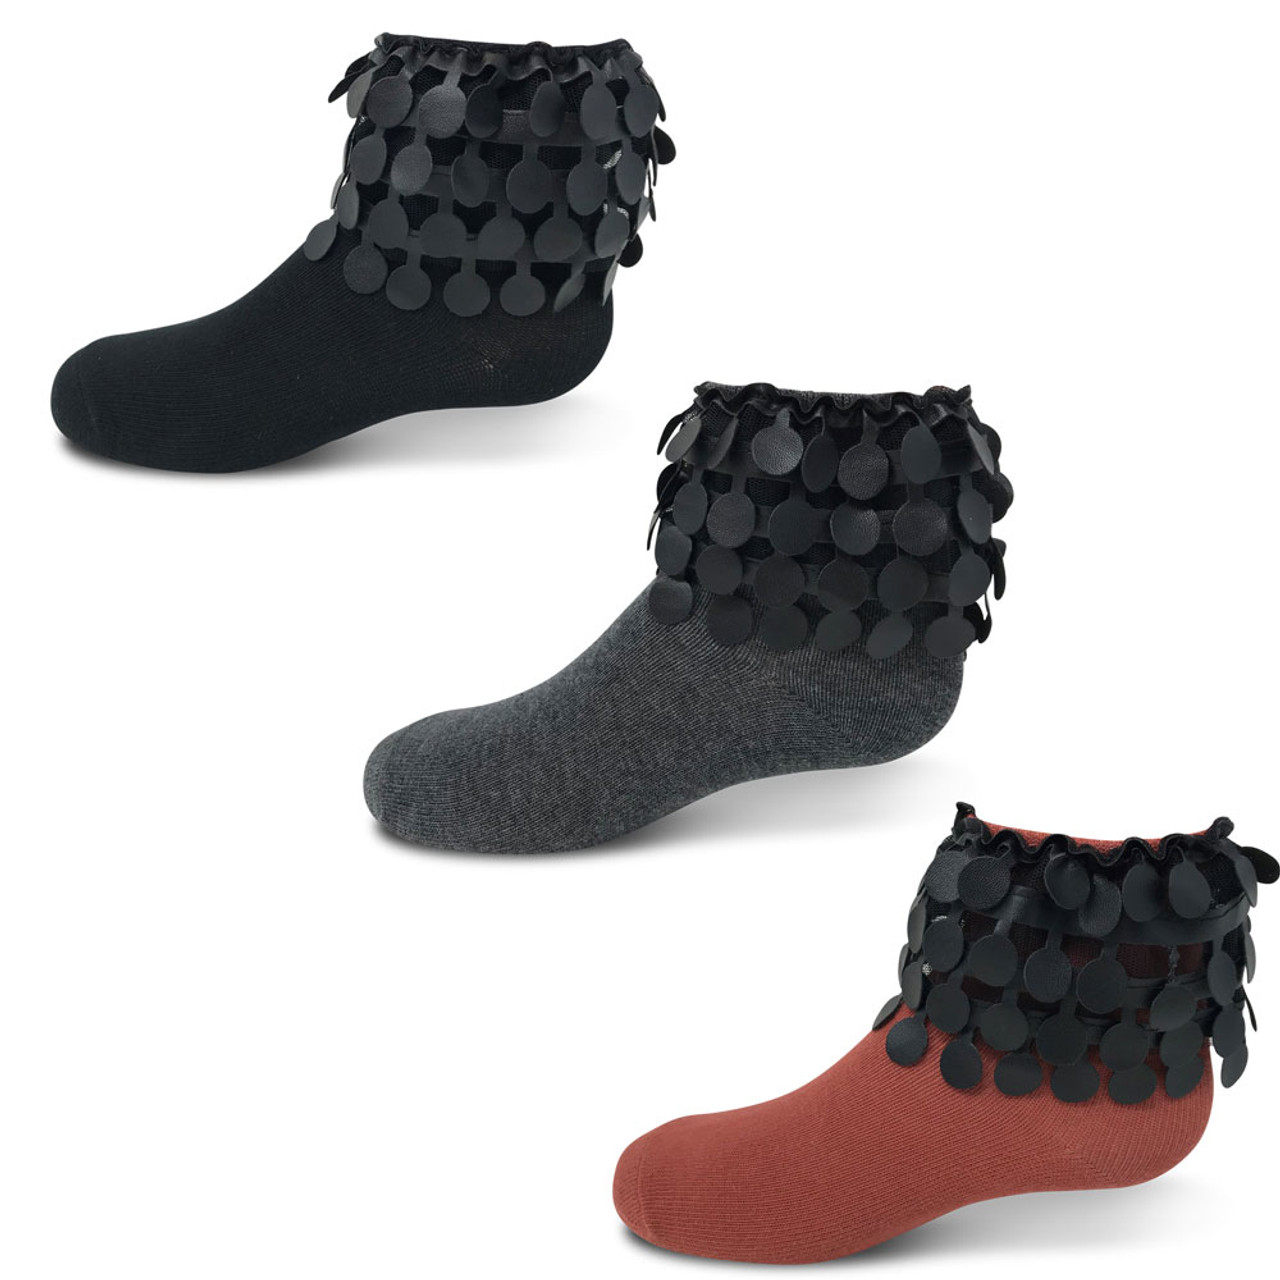 Zubii Leather Circles Ankle Sock